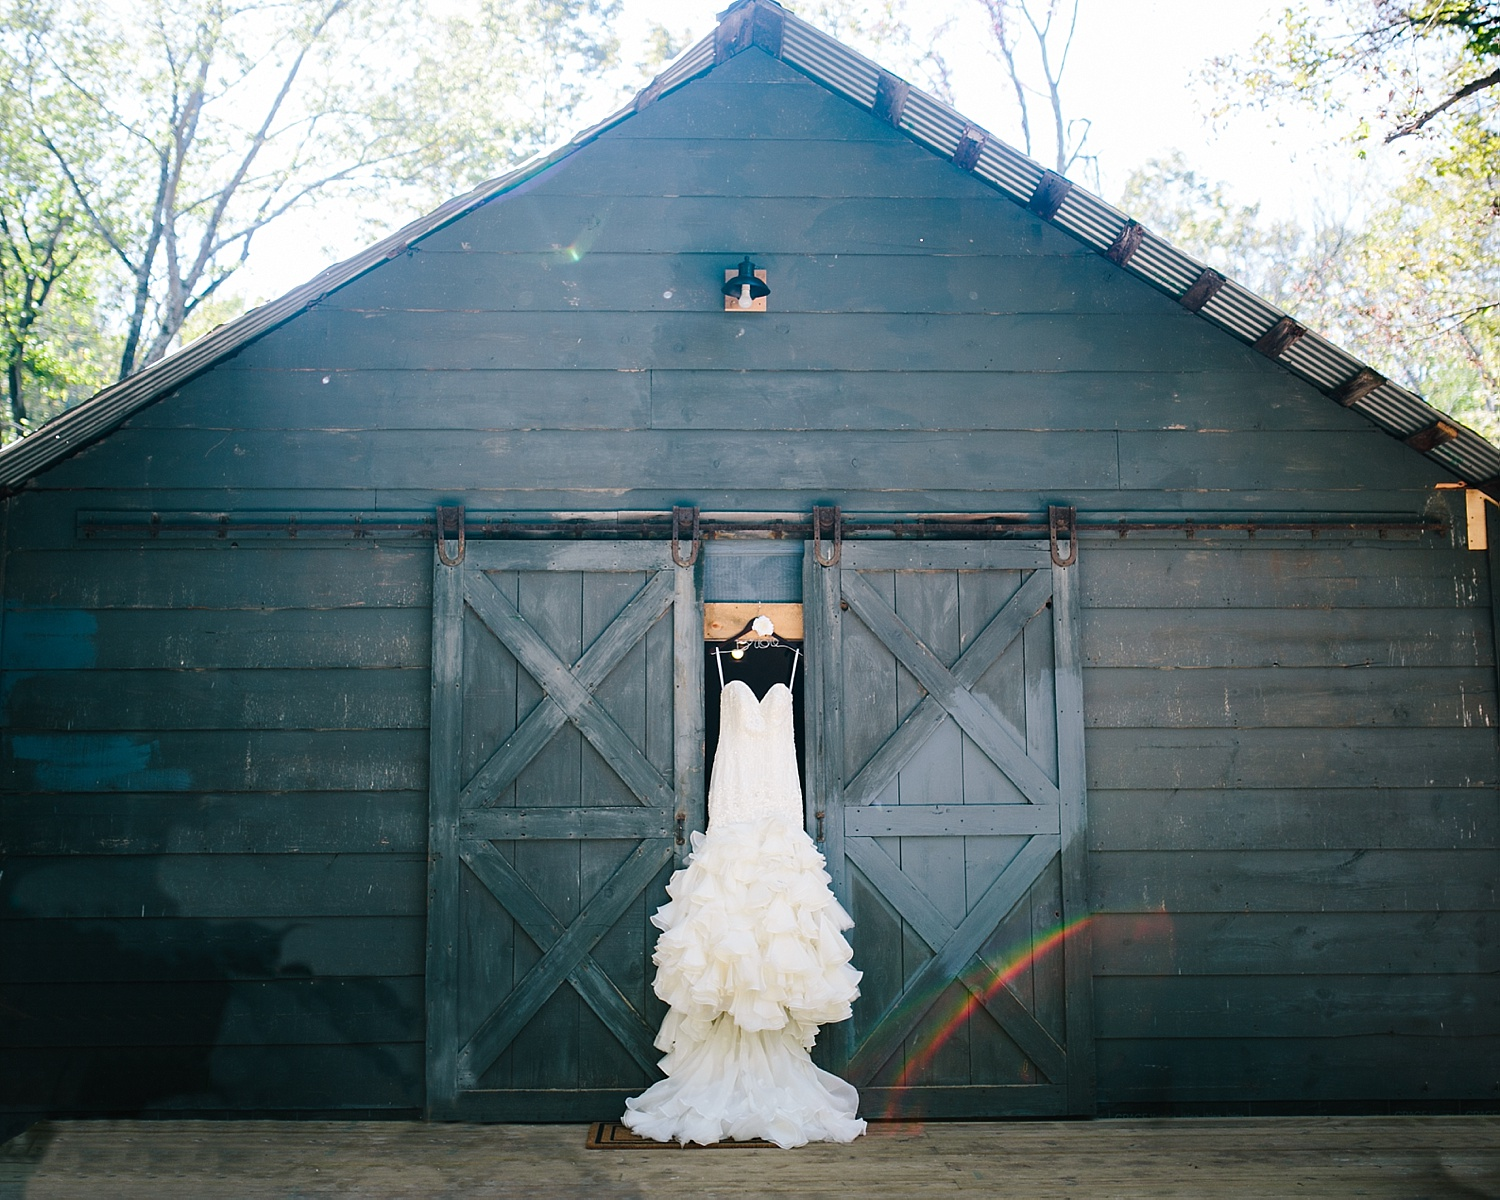 jennyryan_newbeginnings_farmstead_upstatenewyork_wedding_image019.jpg